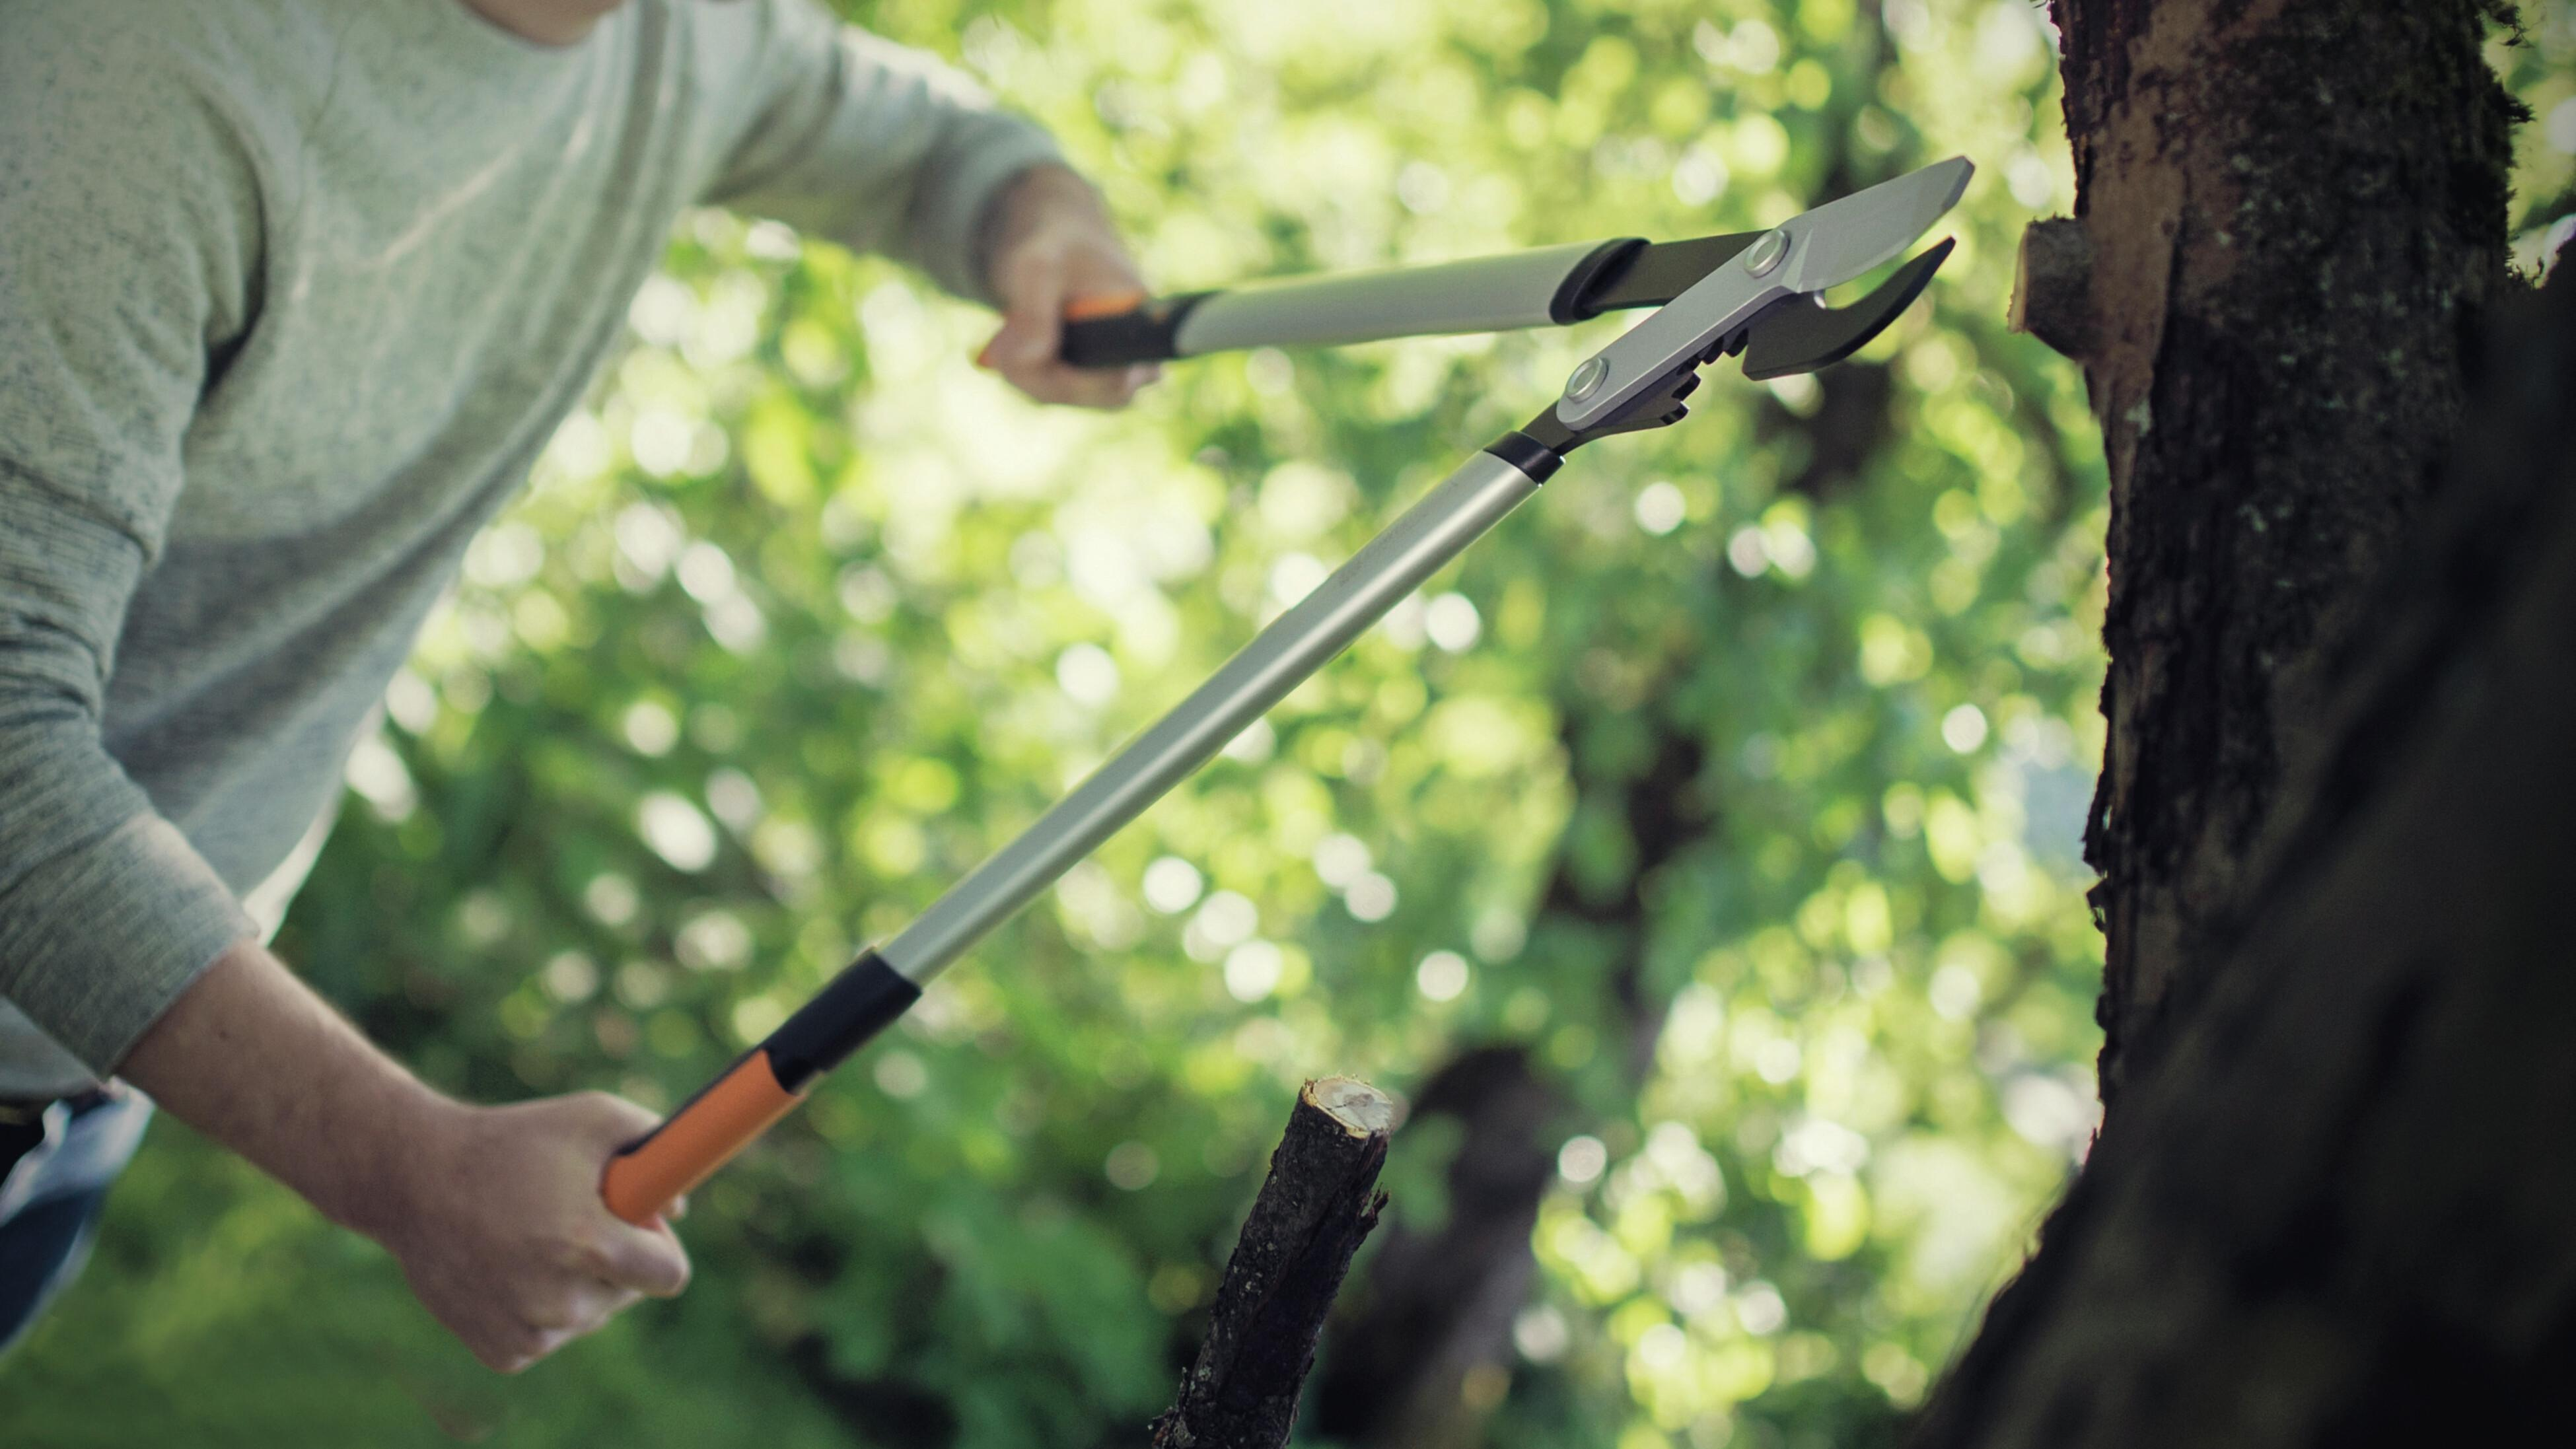 Using loppers to prune a tree